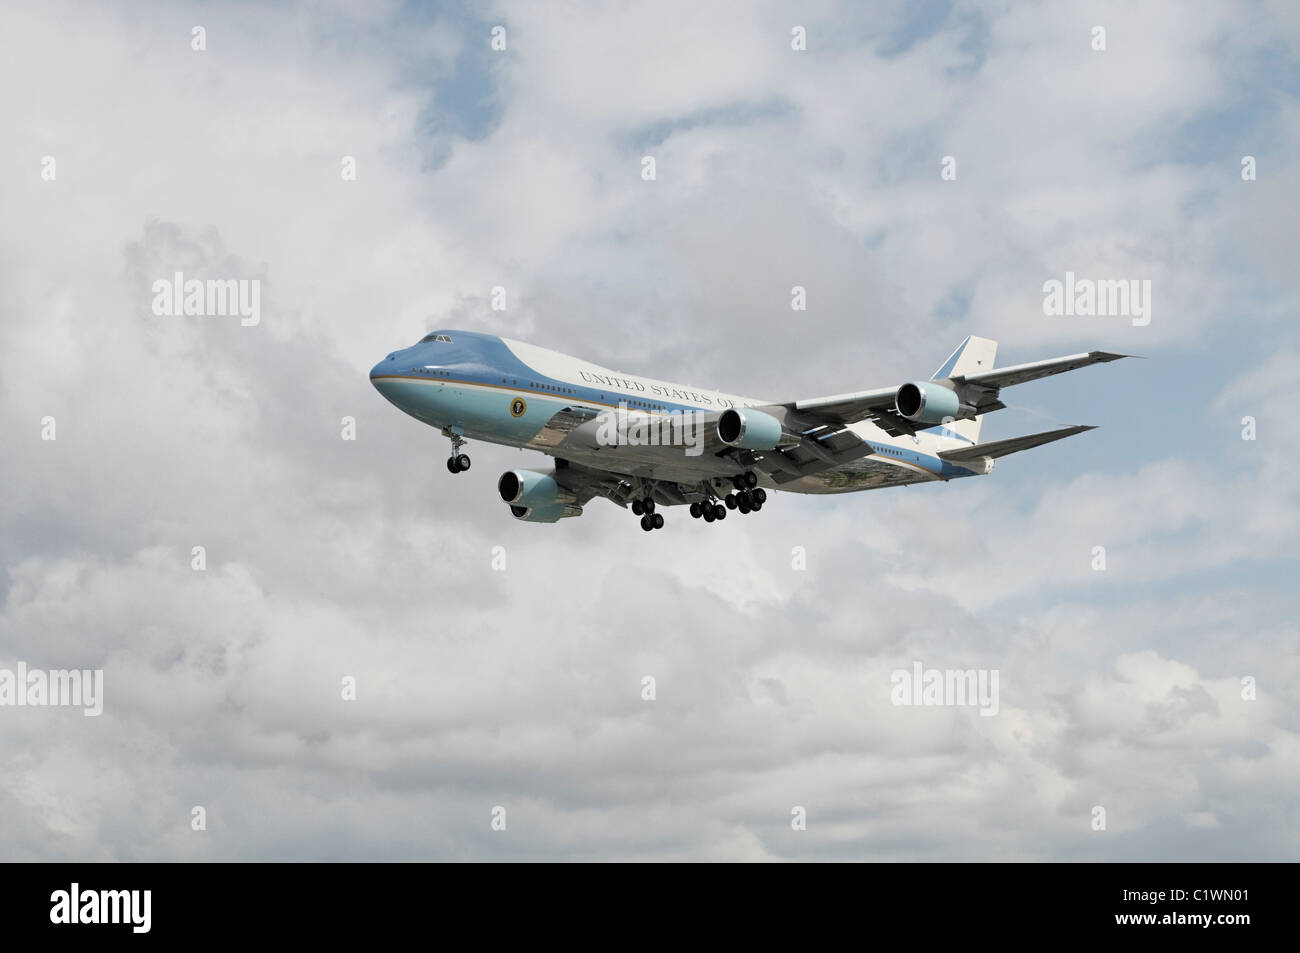 USA, California, Los Angeles, Air Force One about to land at Los Angeles International Airport - Stock Image